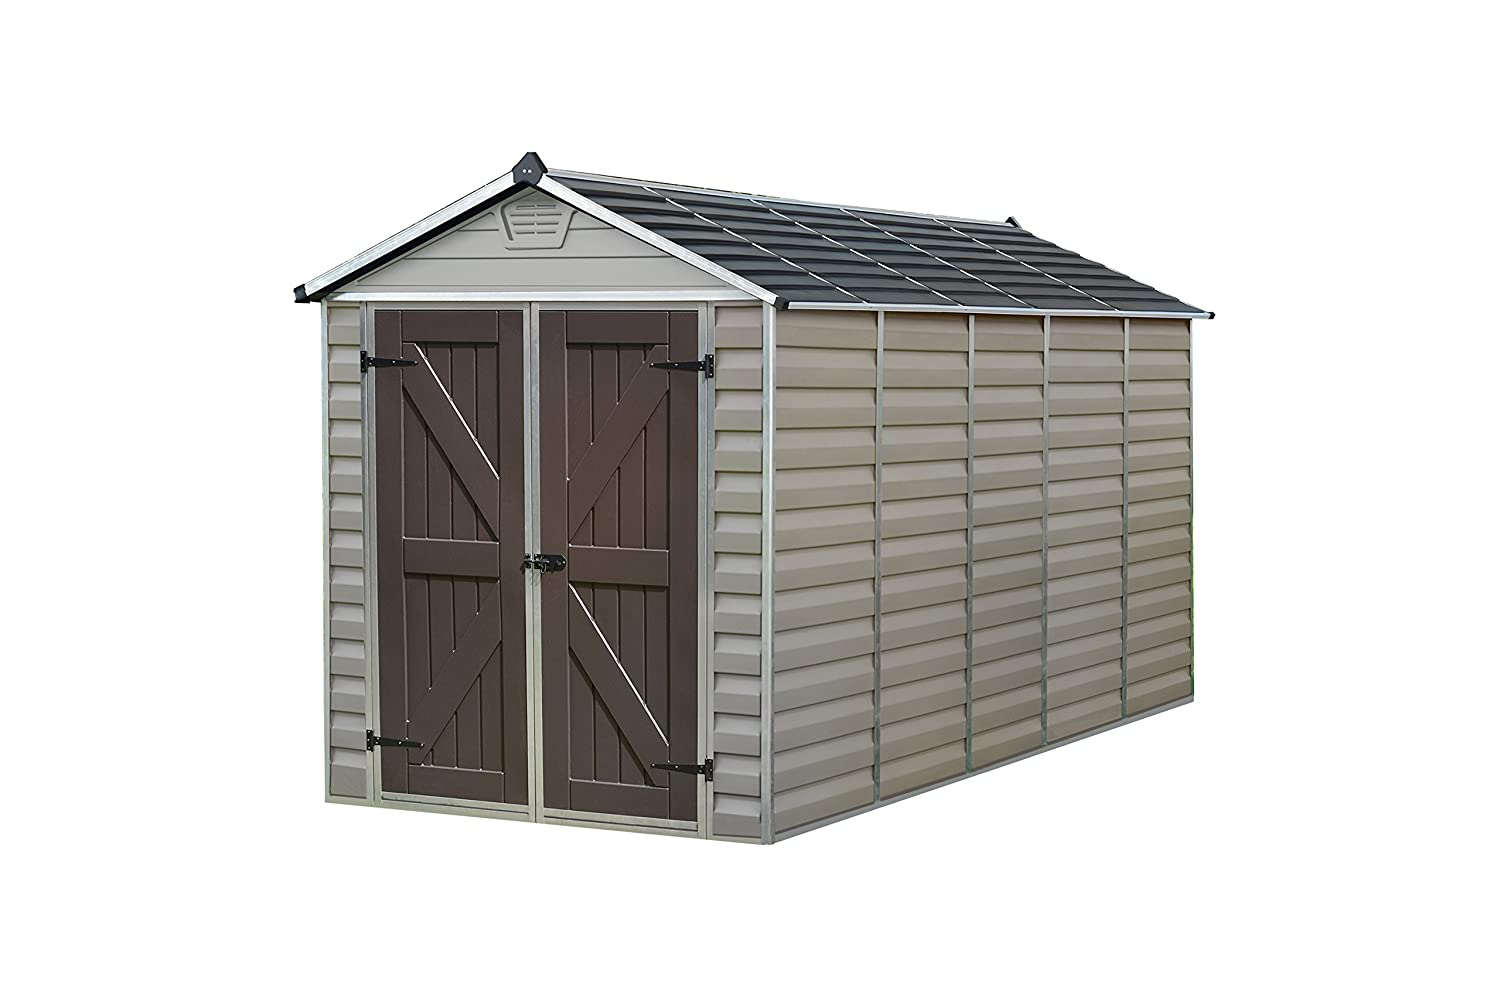 Palram Skylight Storage Shed Tan Garden Outdoor Jpg 1500x994 Thinking  Outside Sheds Skylight